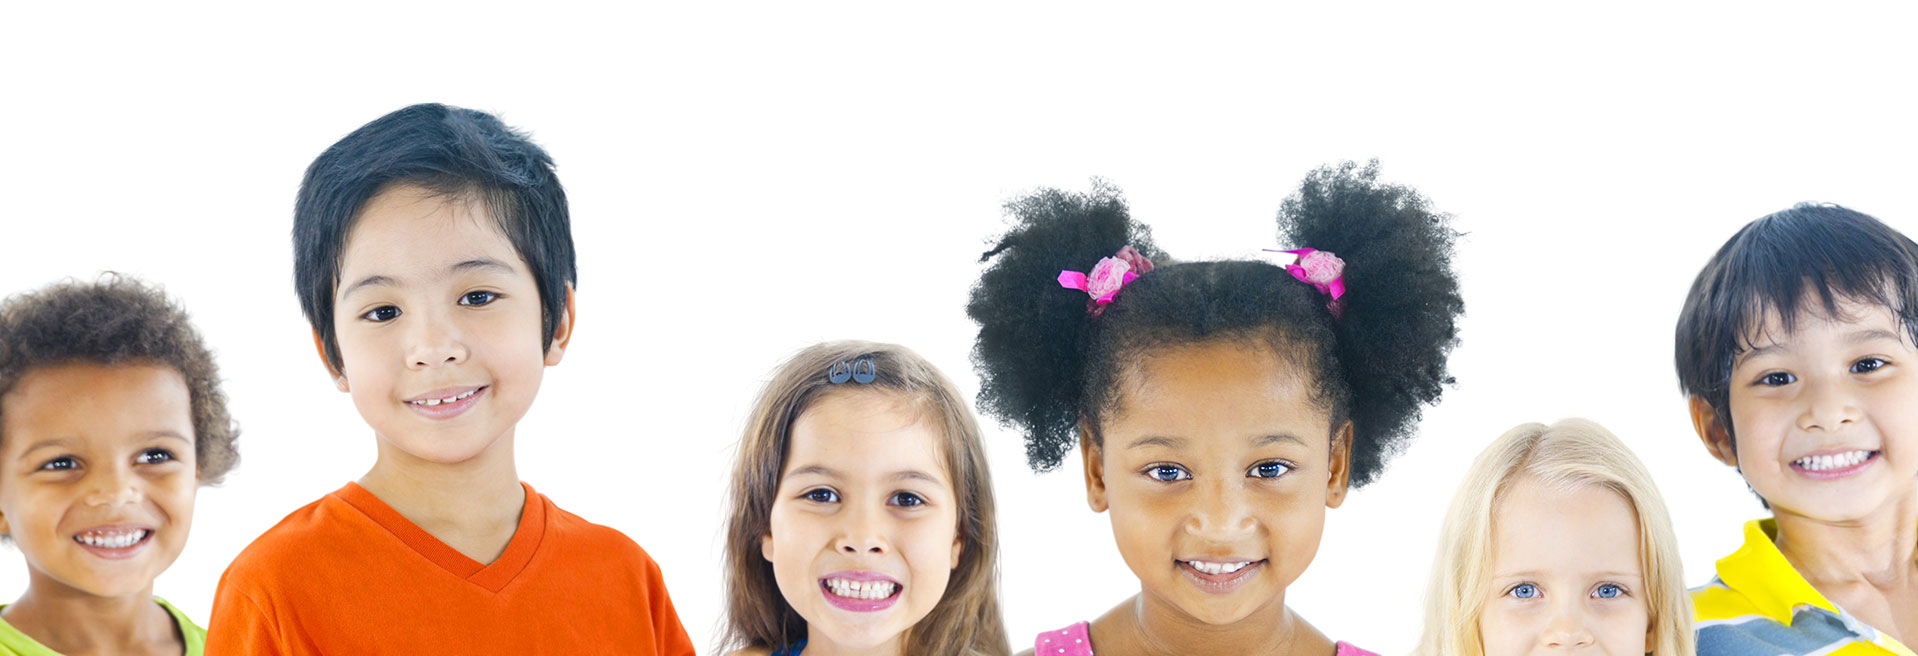 Kids Smiling - Pediatric Dentist in Ann Arbor, MI